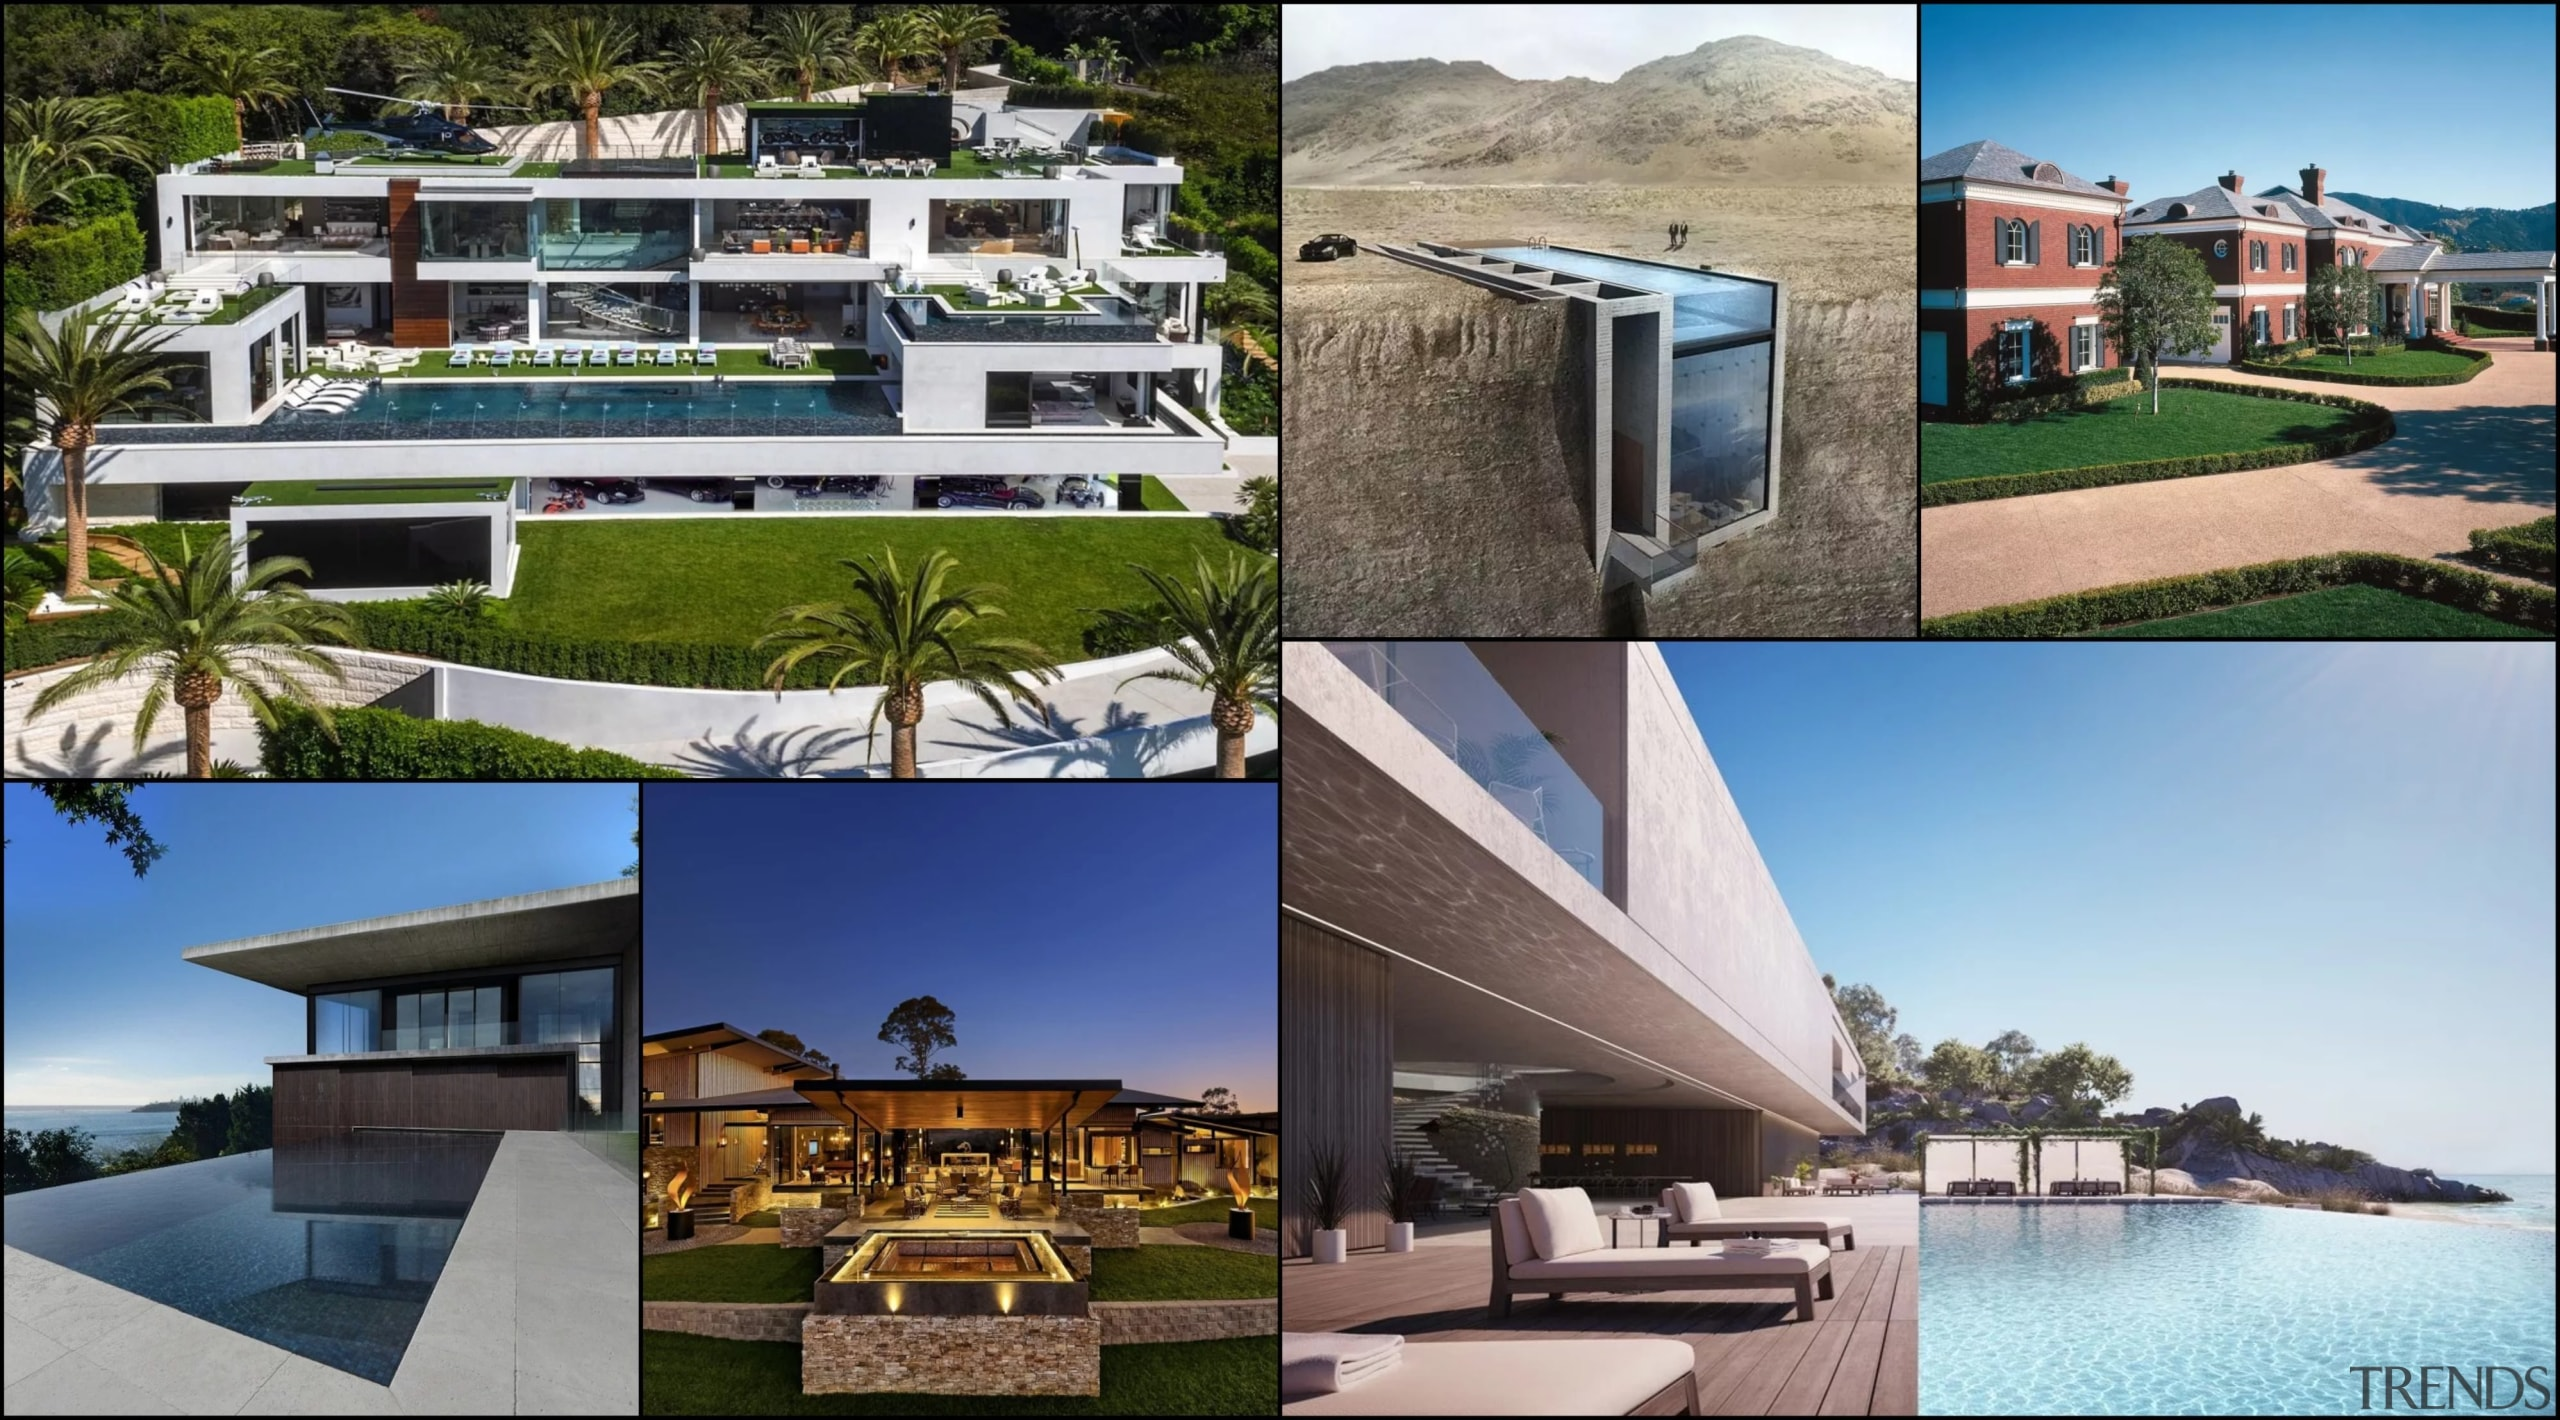 A collage of the featured homes - A architecture, condominium, estate, home, house, leisure, mansion, property, real estate, resort, villa